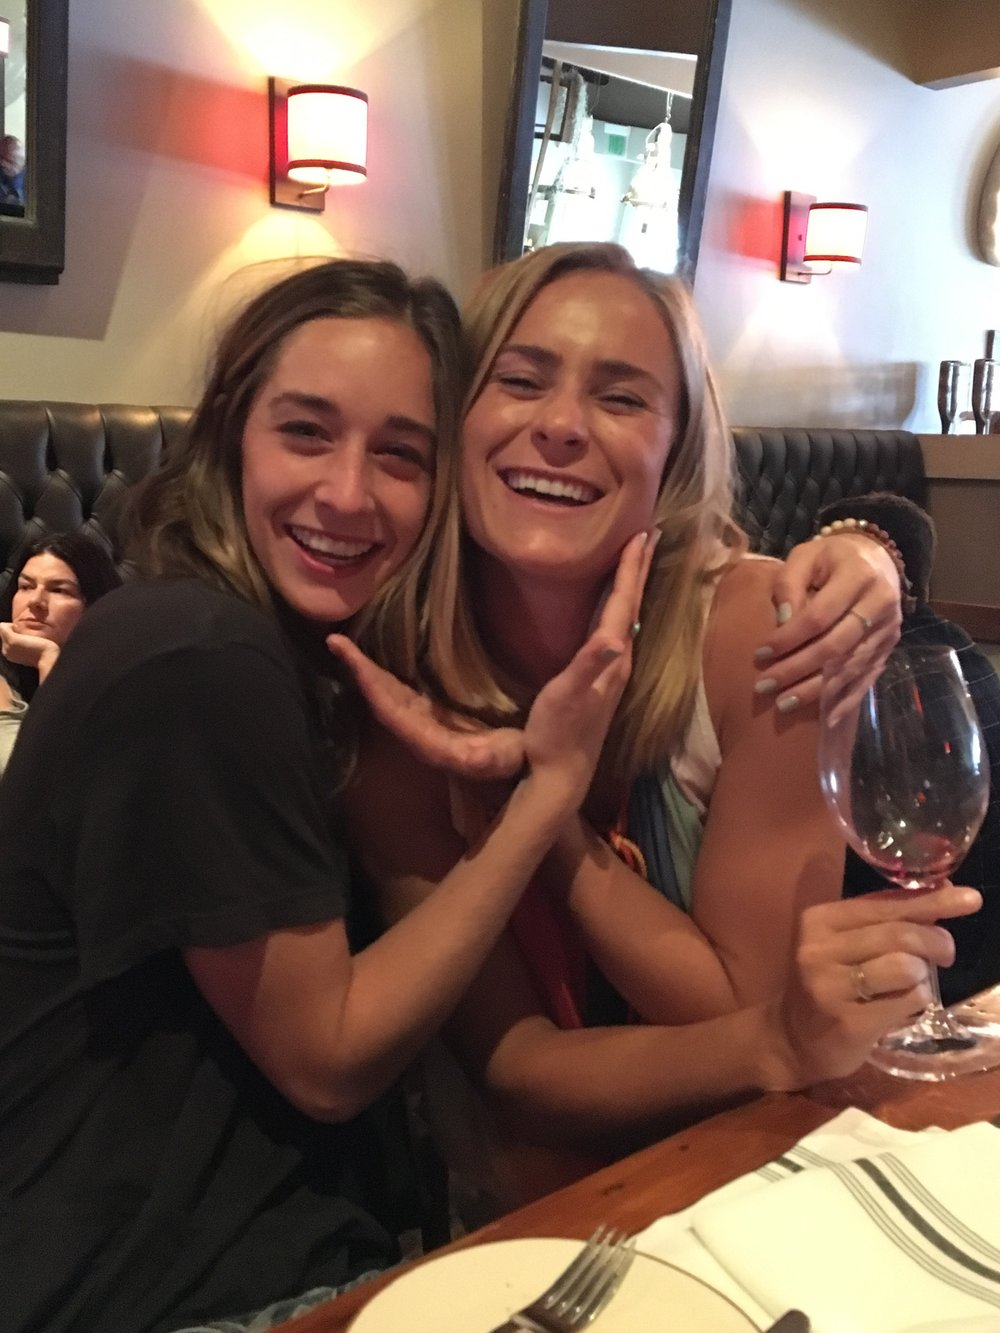 My cousin and I at the wine bar. SO oblivious to what was about to happen!